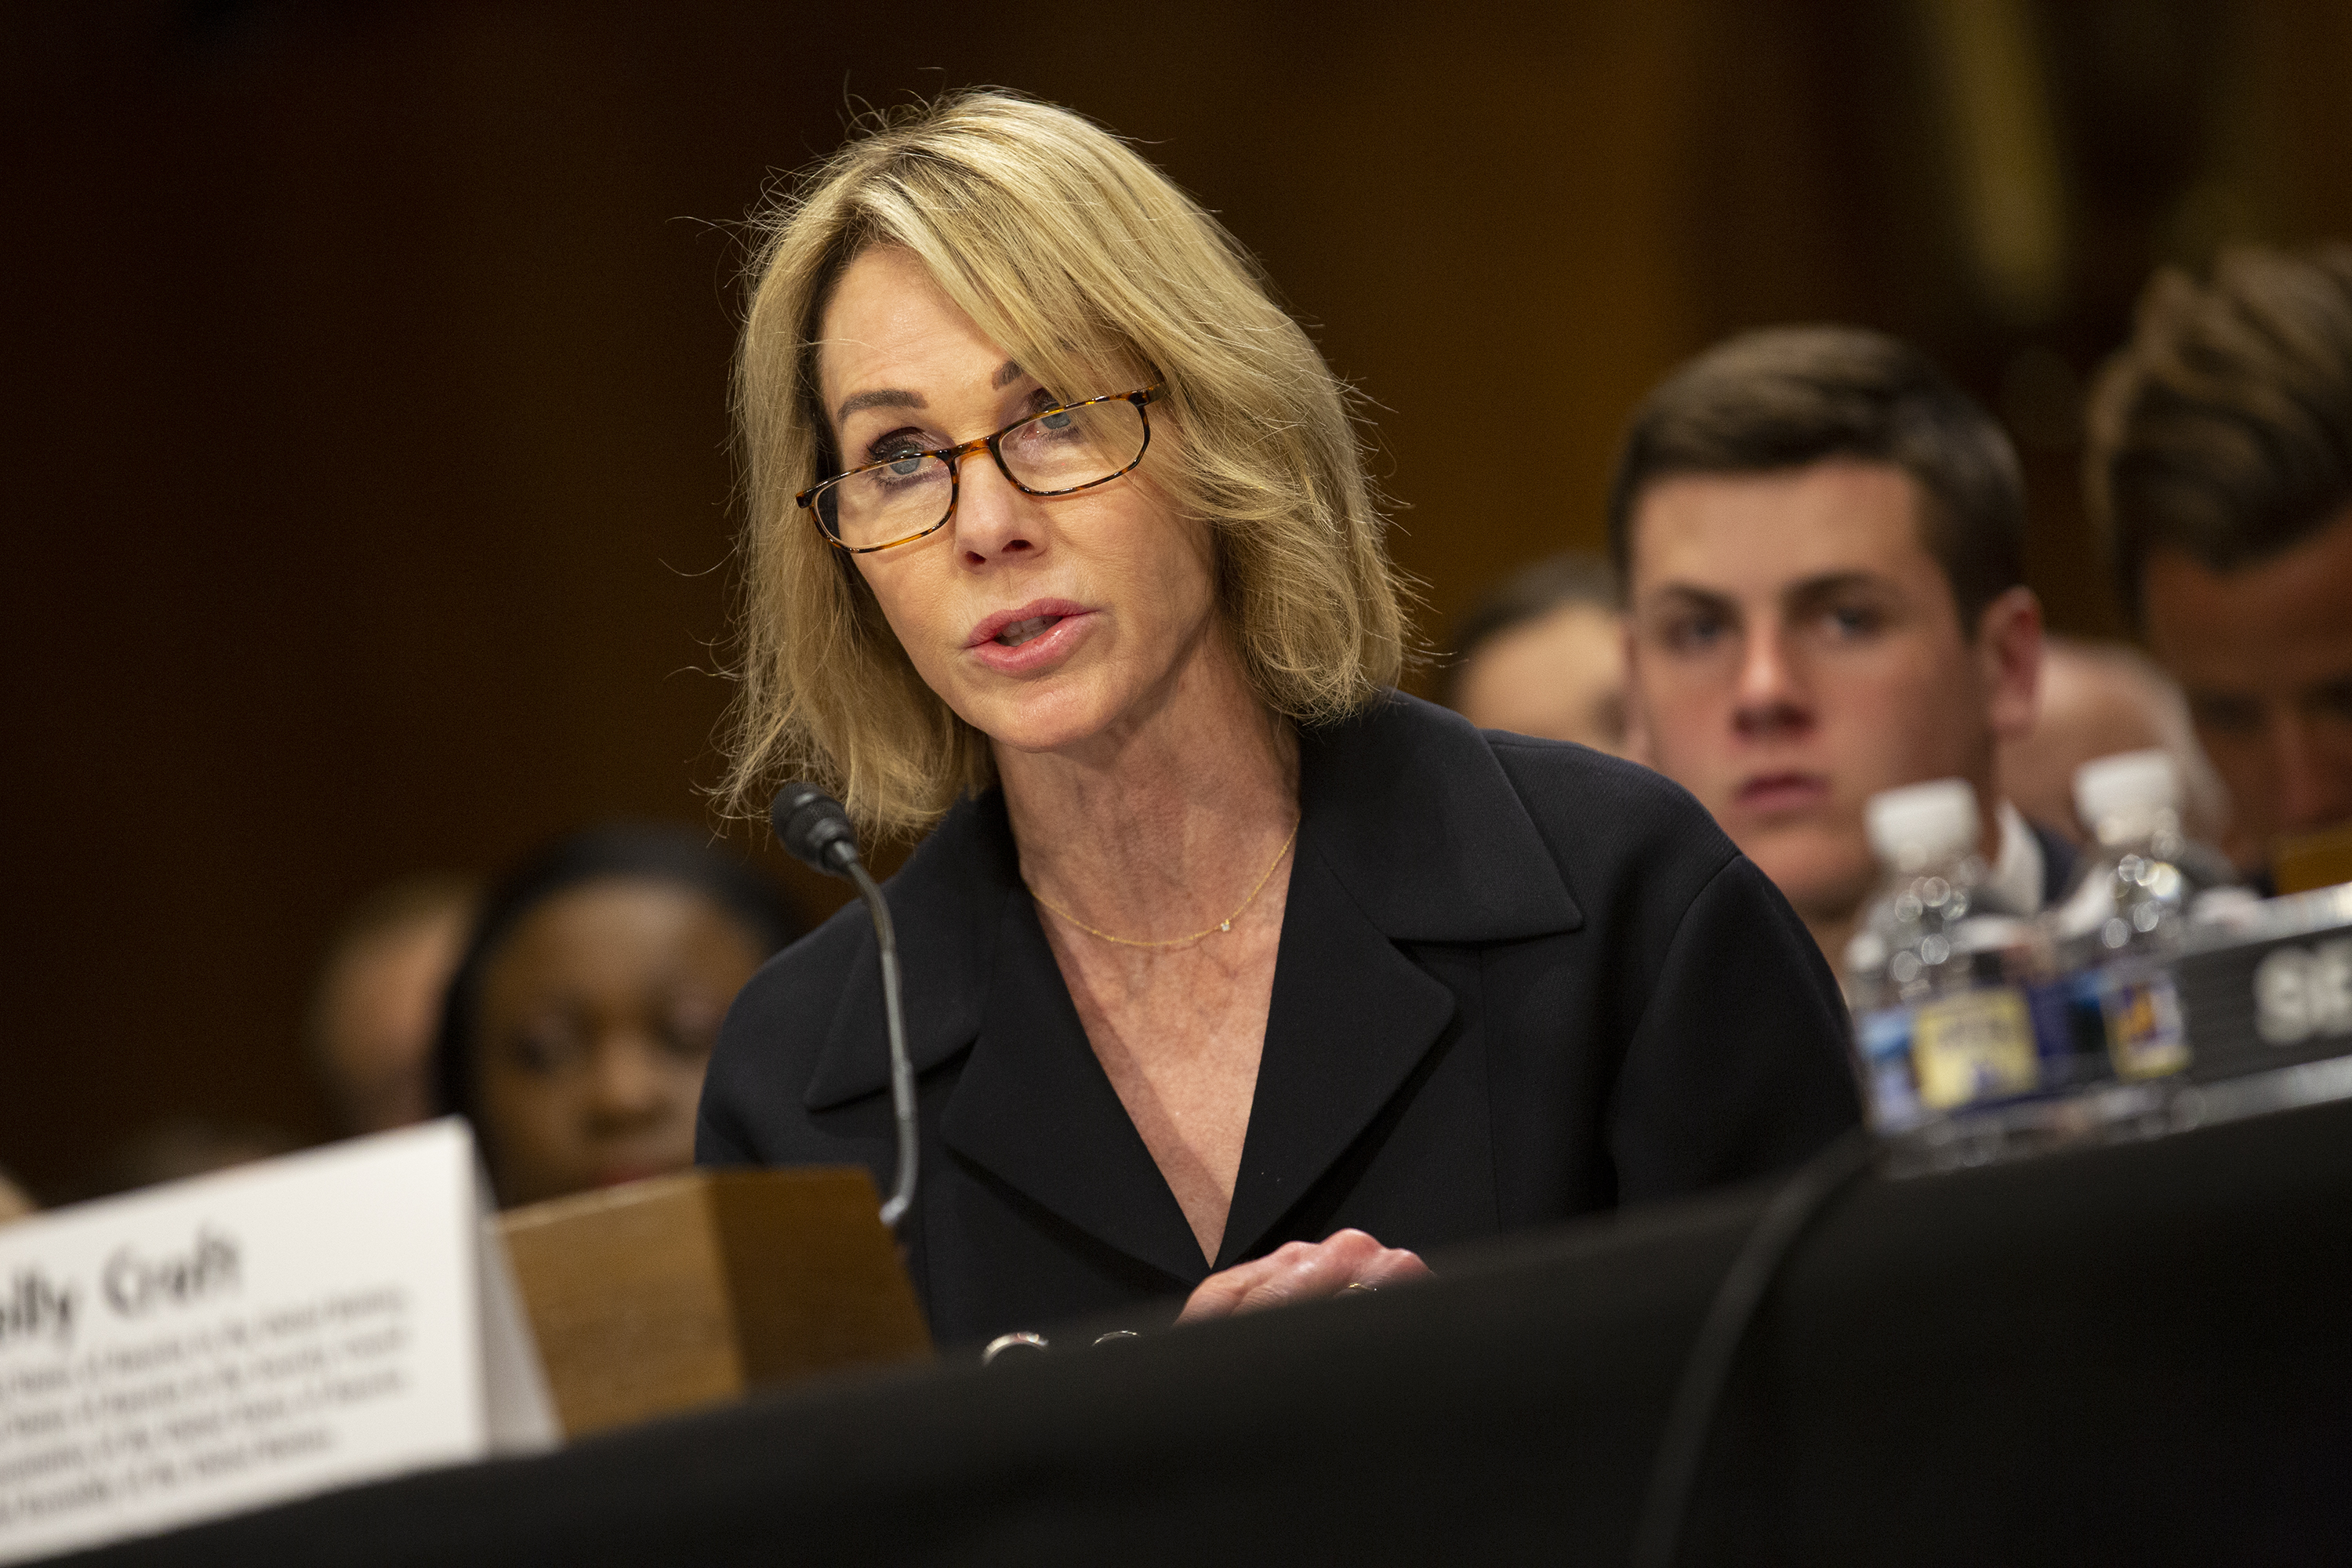 Kelly Craft, President Trump's nominee to be Representative to the United Nations, testifies at her nomination hearing before the Senate Foreign Relations Committee on June 19, 2019 in Washington, DC. (Photo by Stefani Reynolds/Getty Images)